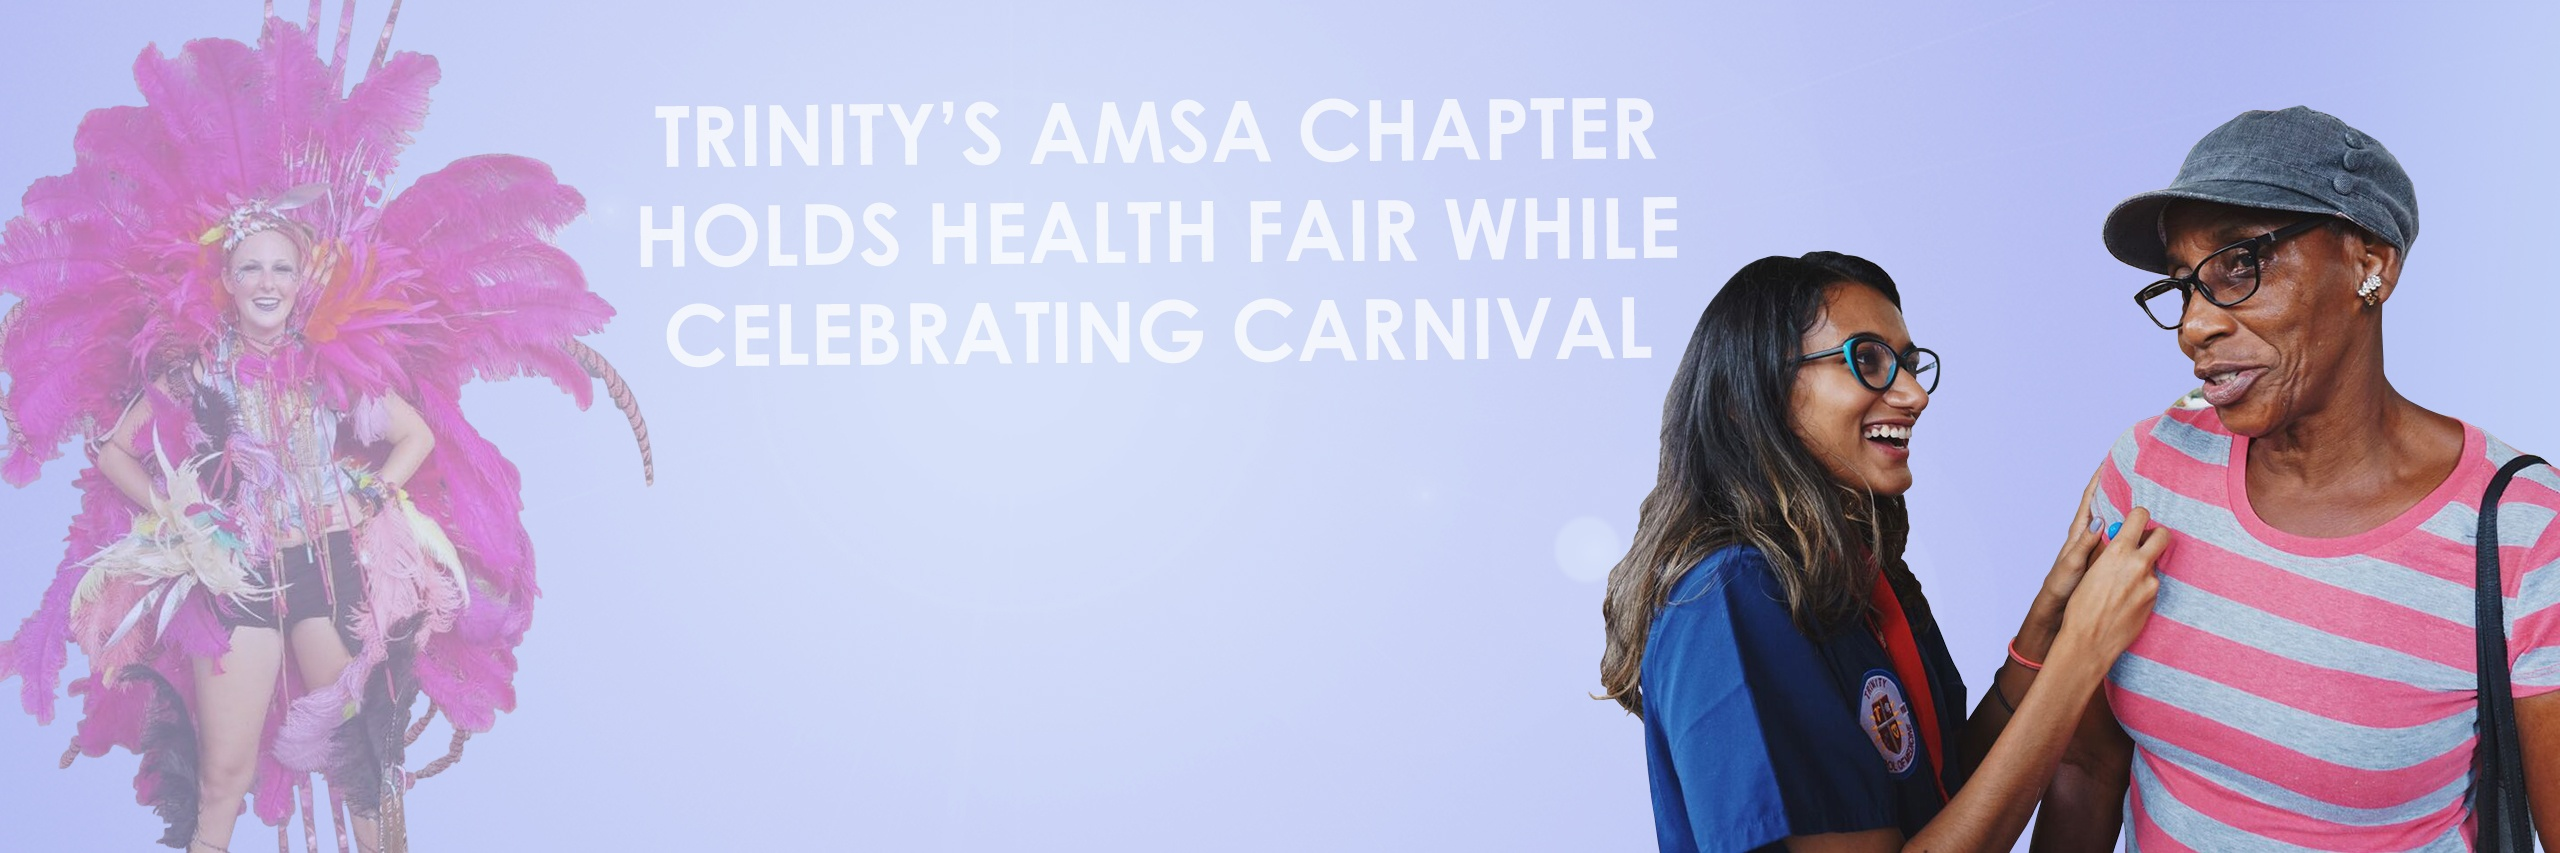 Trinity's AMSA Chapter Holds Health Fair While Celebrating Carnival